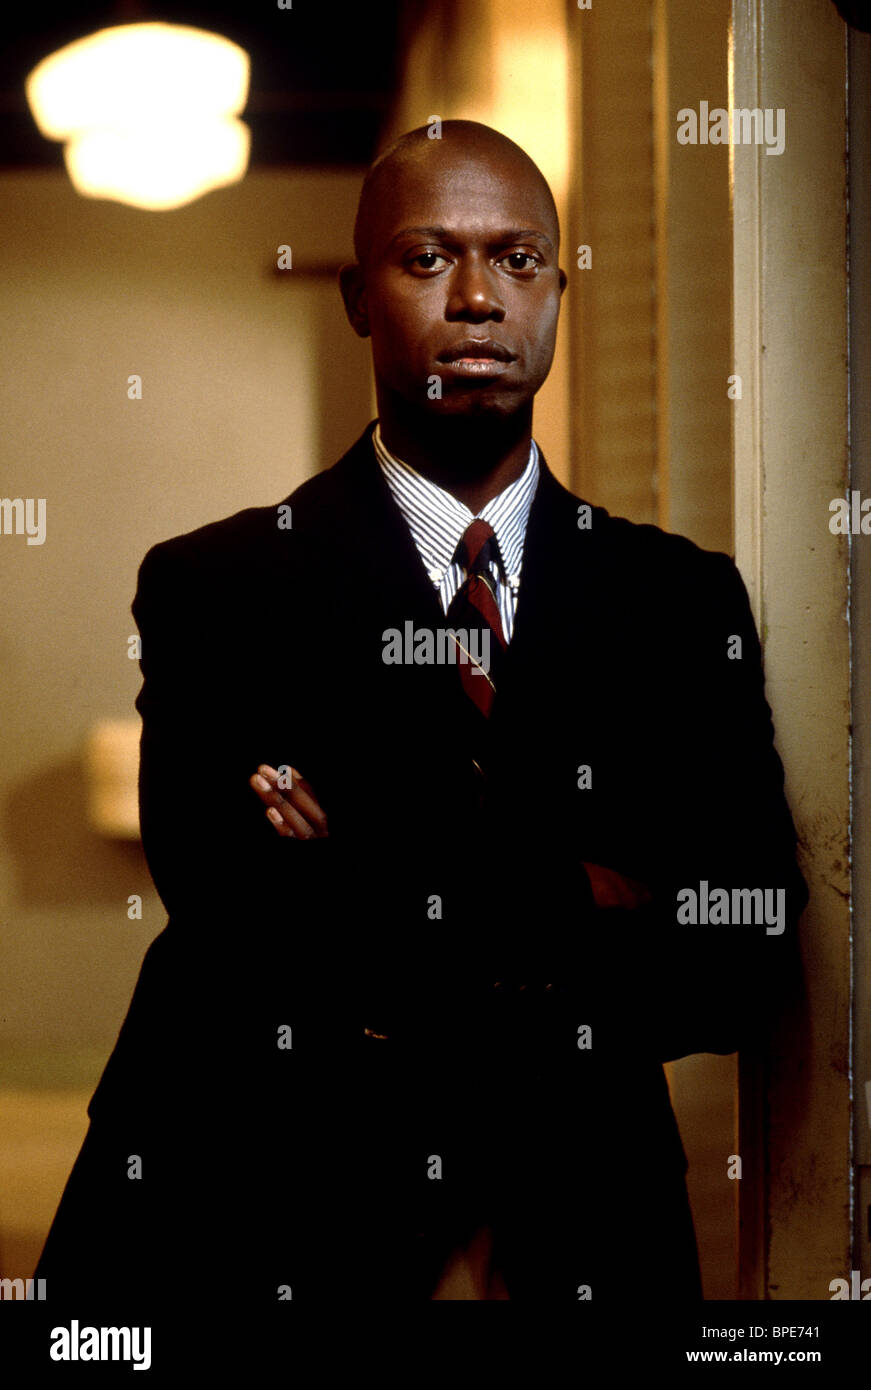 ANDRE BRAUGHER HOMICIDE: LIFE ON THE STREET (1993)